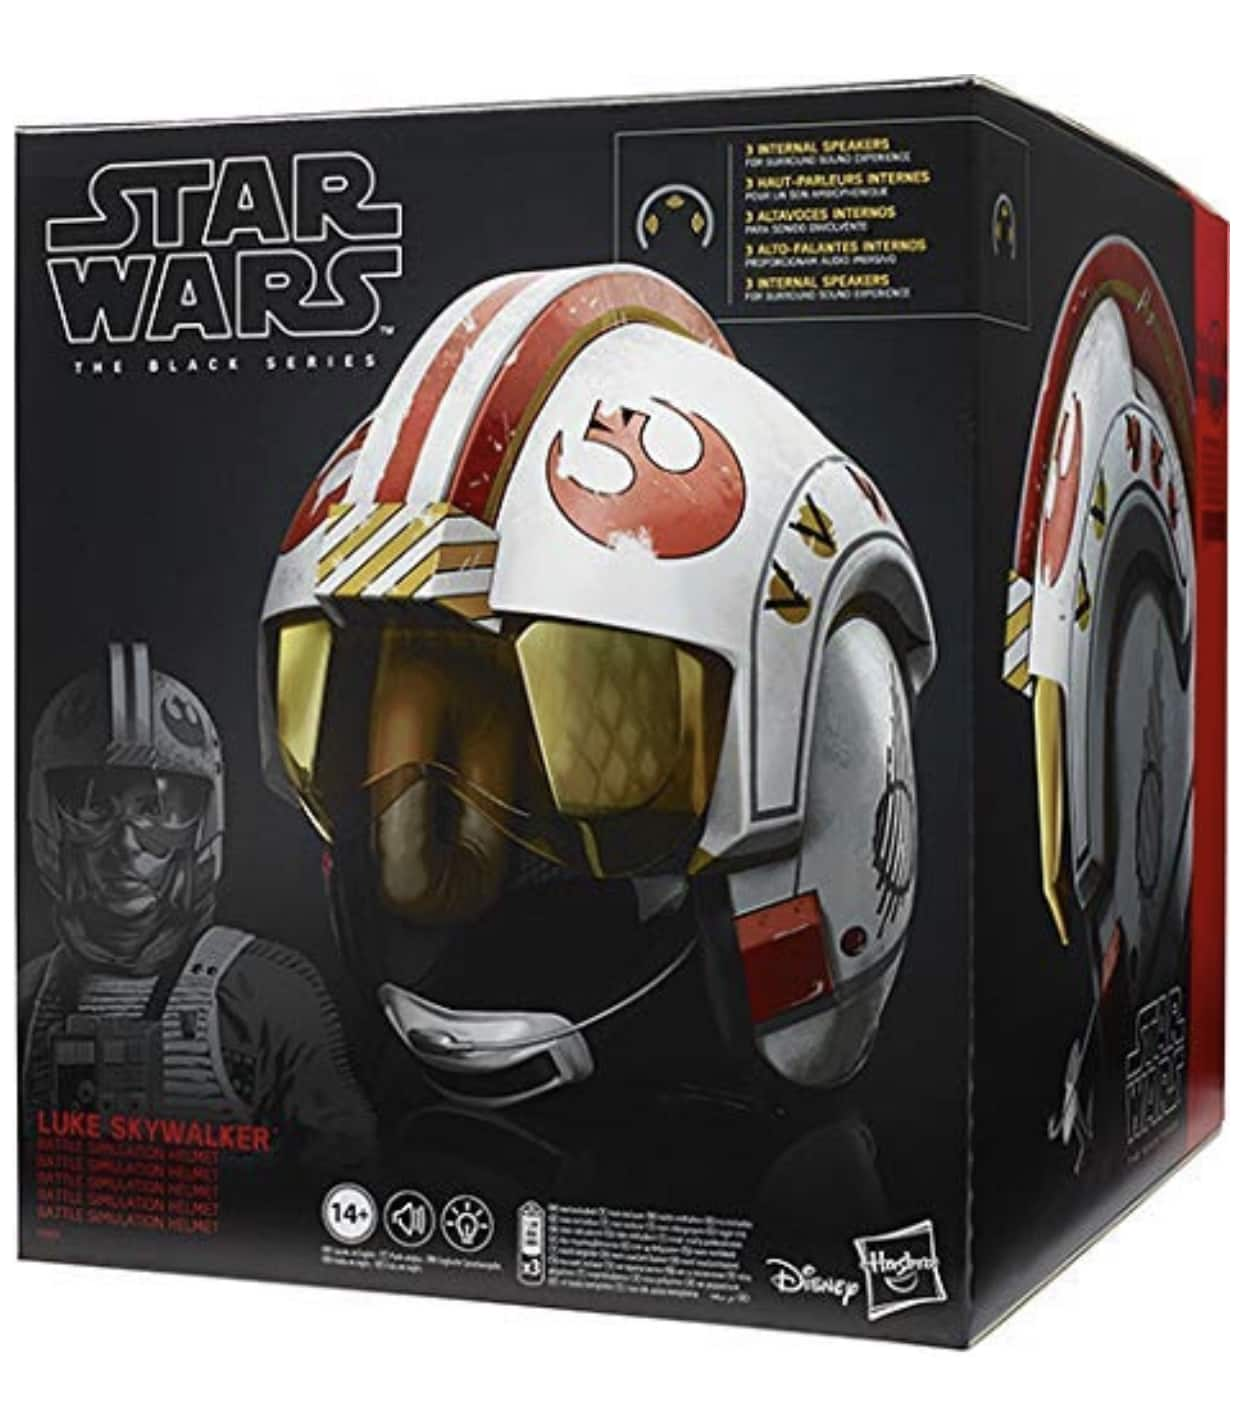 Star Wars The Black Series Luke Skywalker Battle Simulation Premium Electronic Helmet. 1:1 Scale with Lights & Sounds. $89.99 after coupon at Amazon.